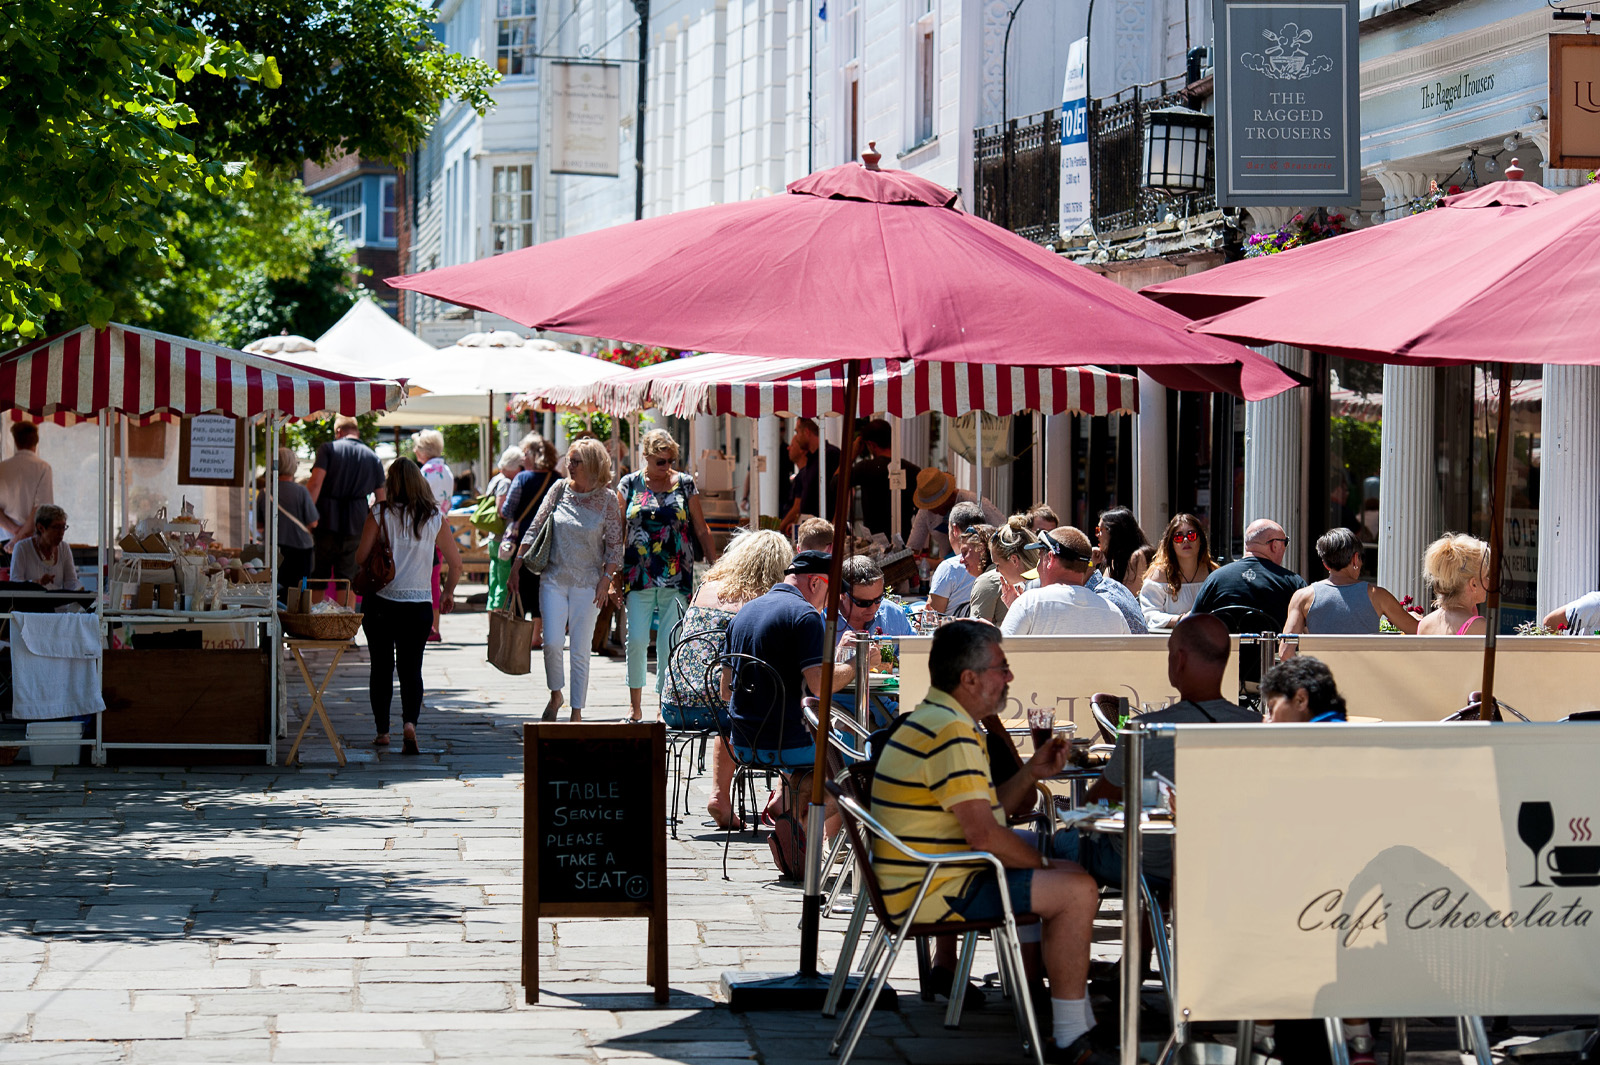 Eating al fresco in The Pantiles - photo by David Hodgkinson